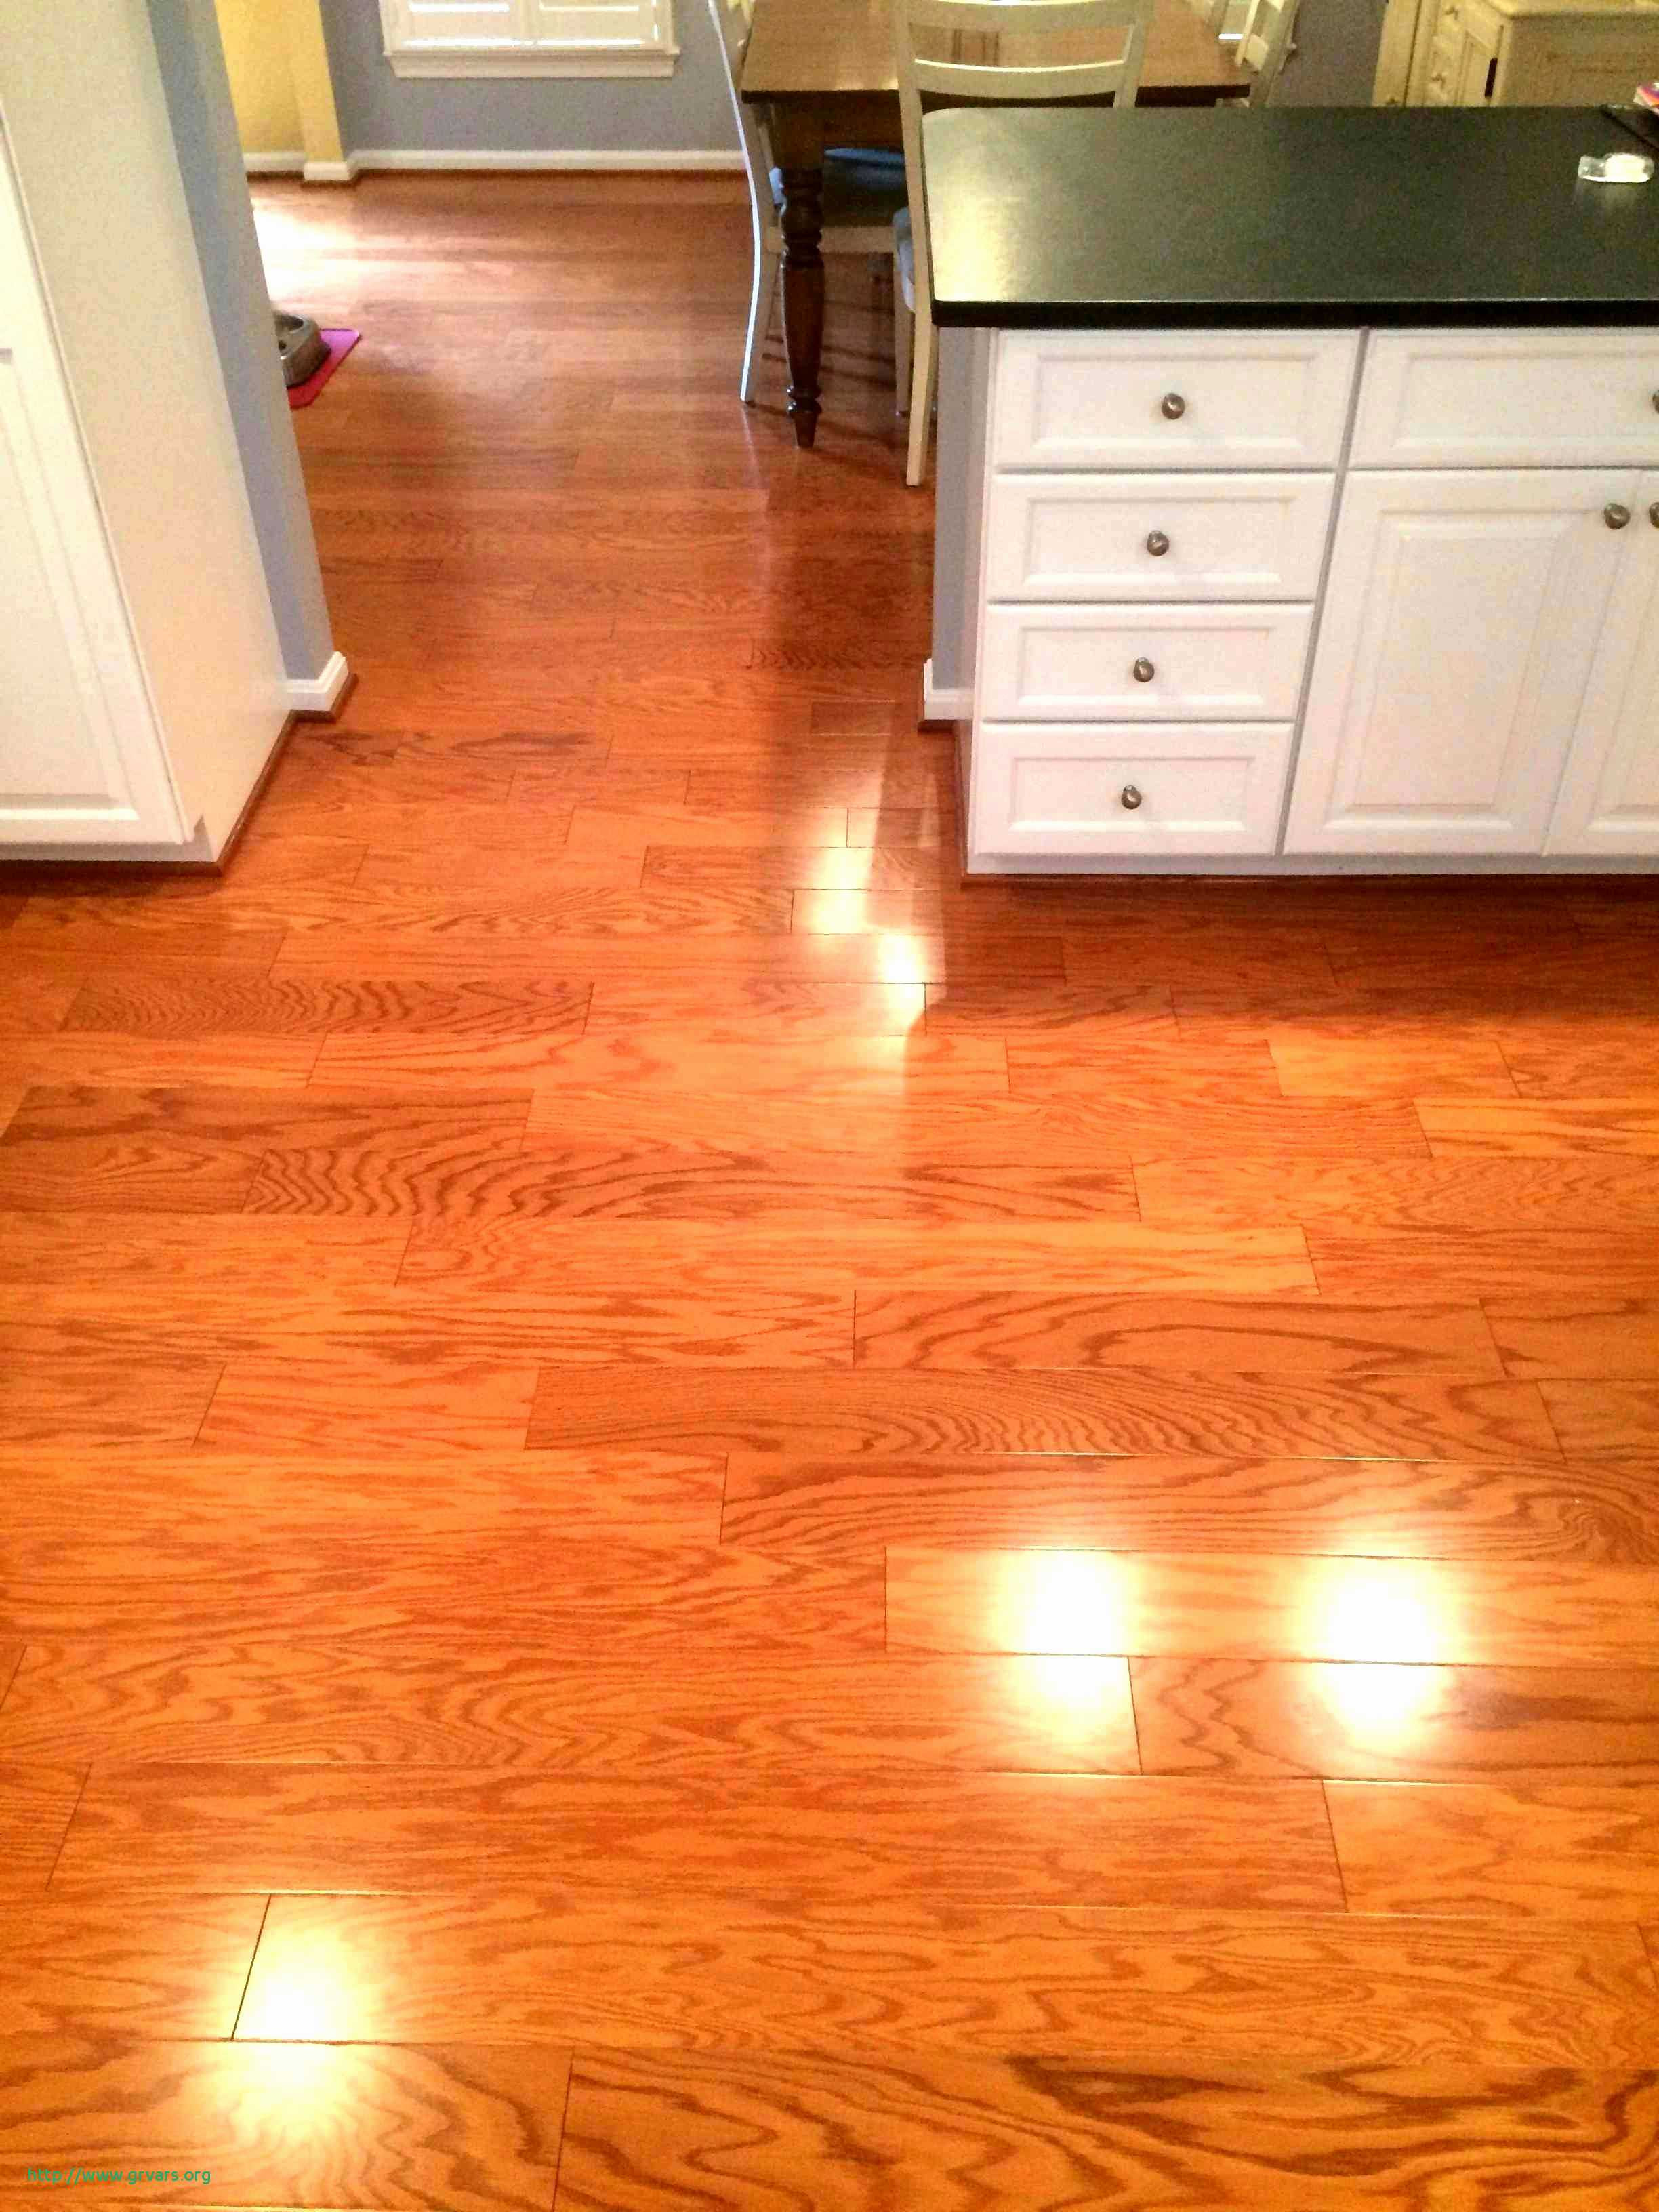 refinishing hardwood floors how long does it take of 21 inspirant pictures of refinished hardwood floors ideas blog with 21 photos of the 21 inspirant pictures of refinished hardwood floors